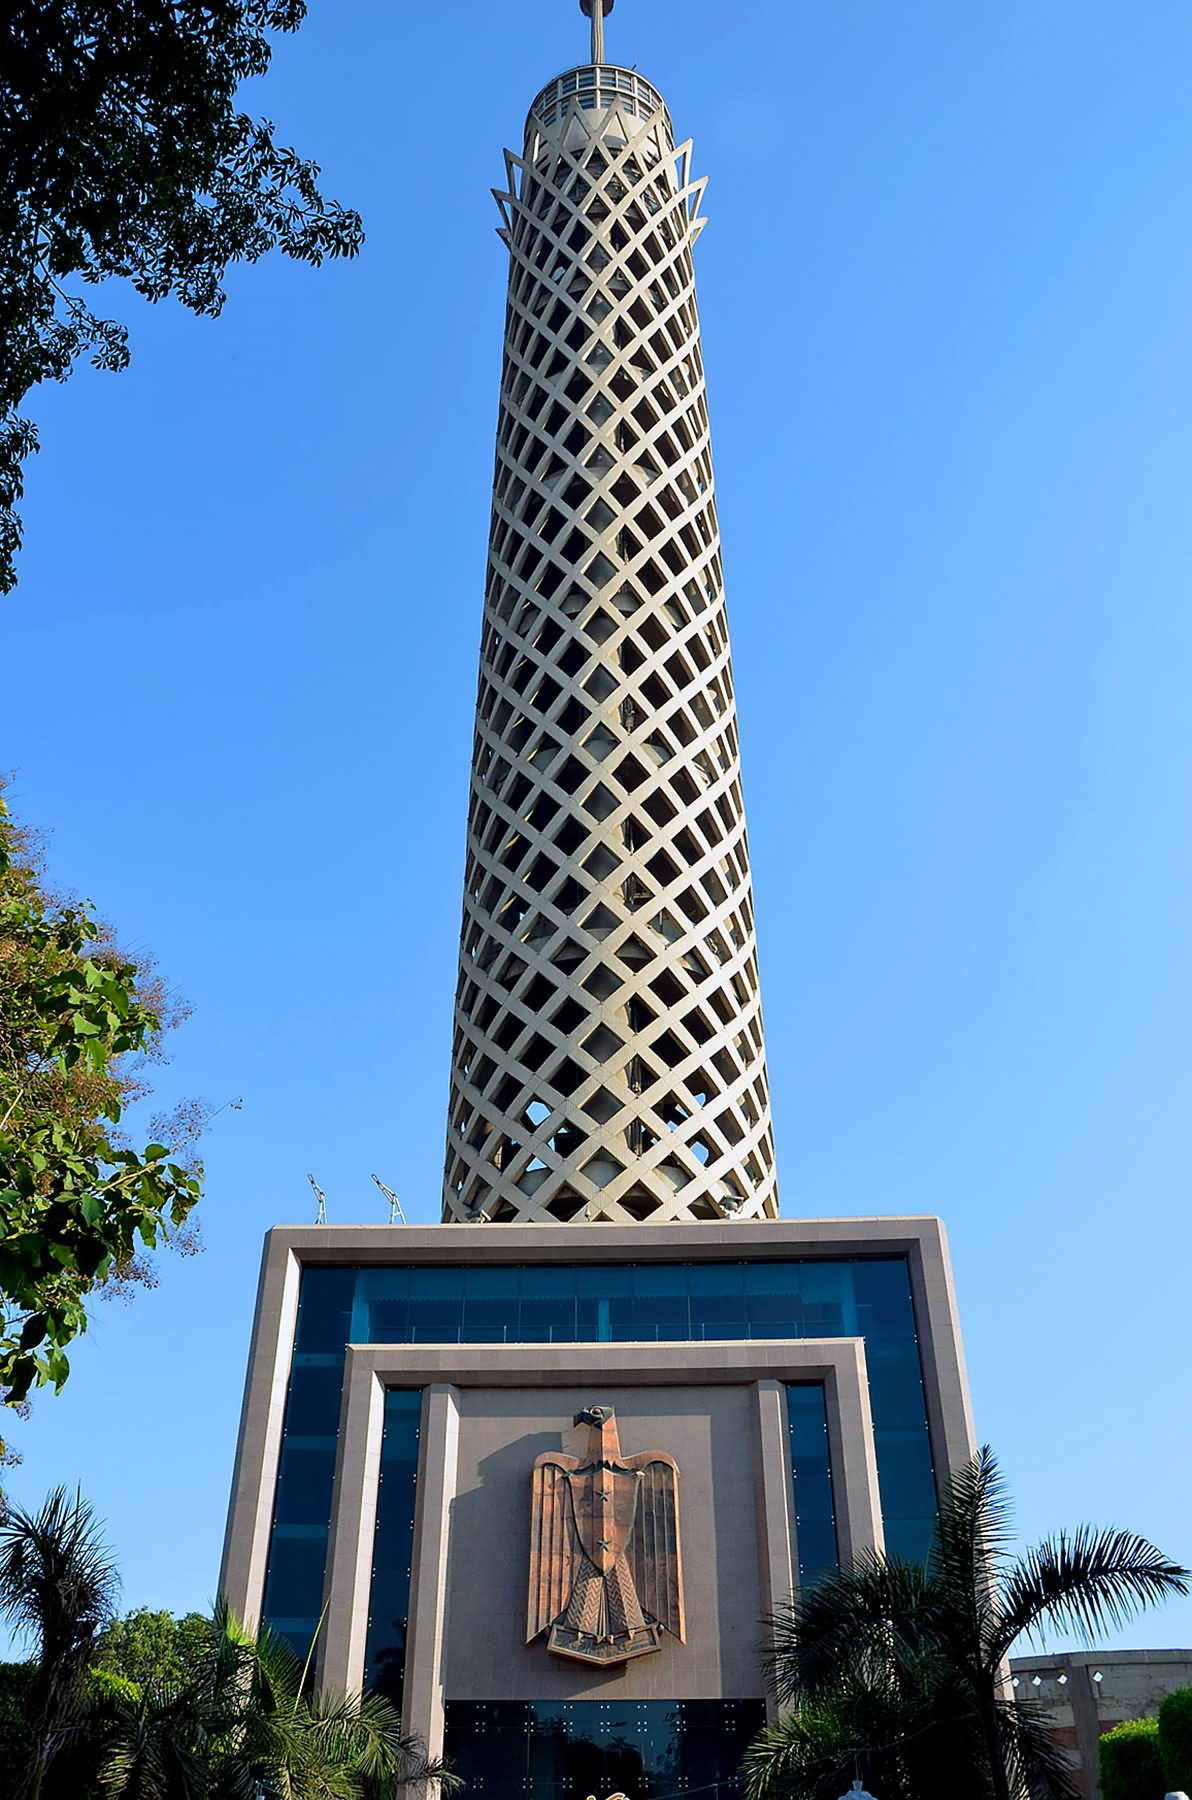 Cairo Tower Cairo, 35 Beautiful Pictures And Images Of Cairo Tower, Cairo, Egypt